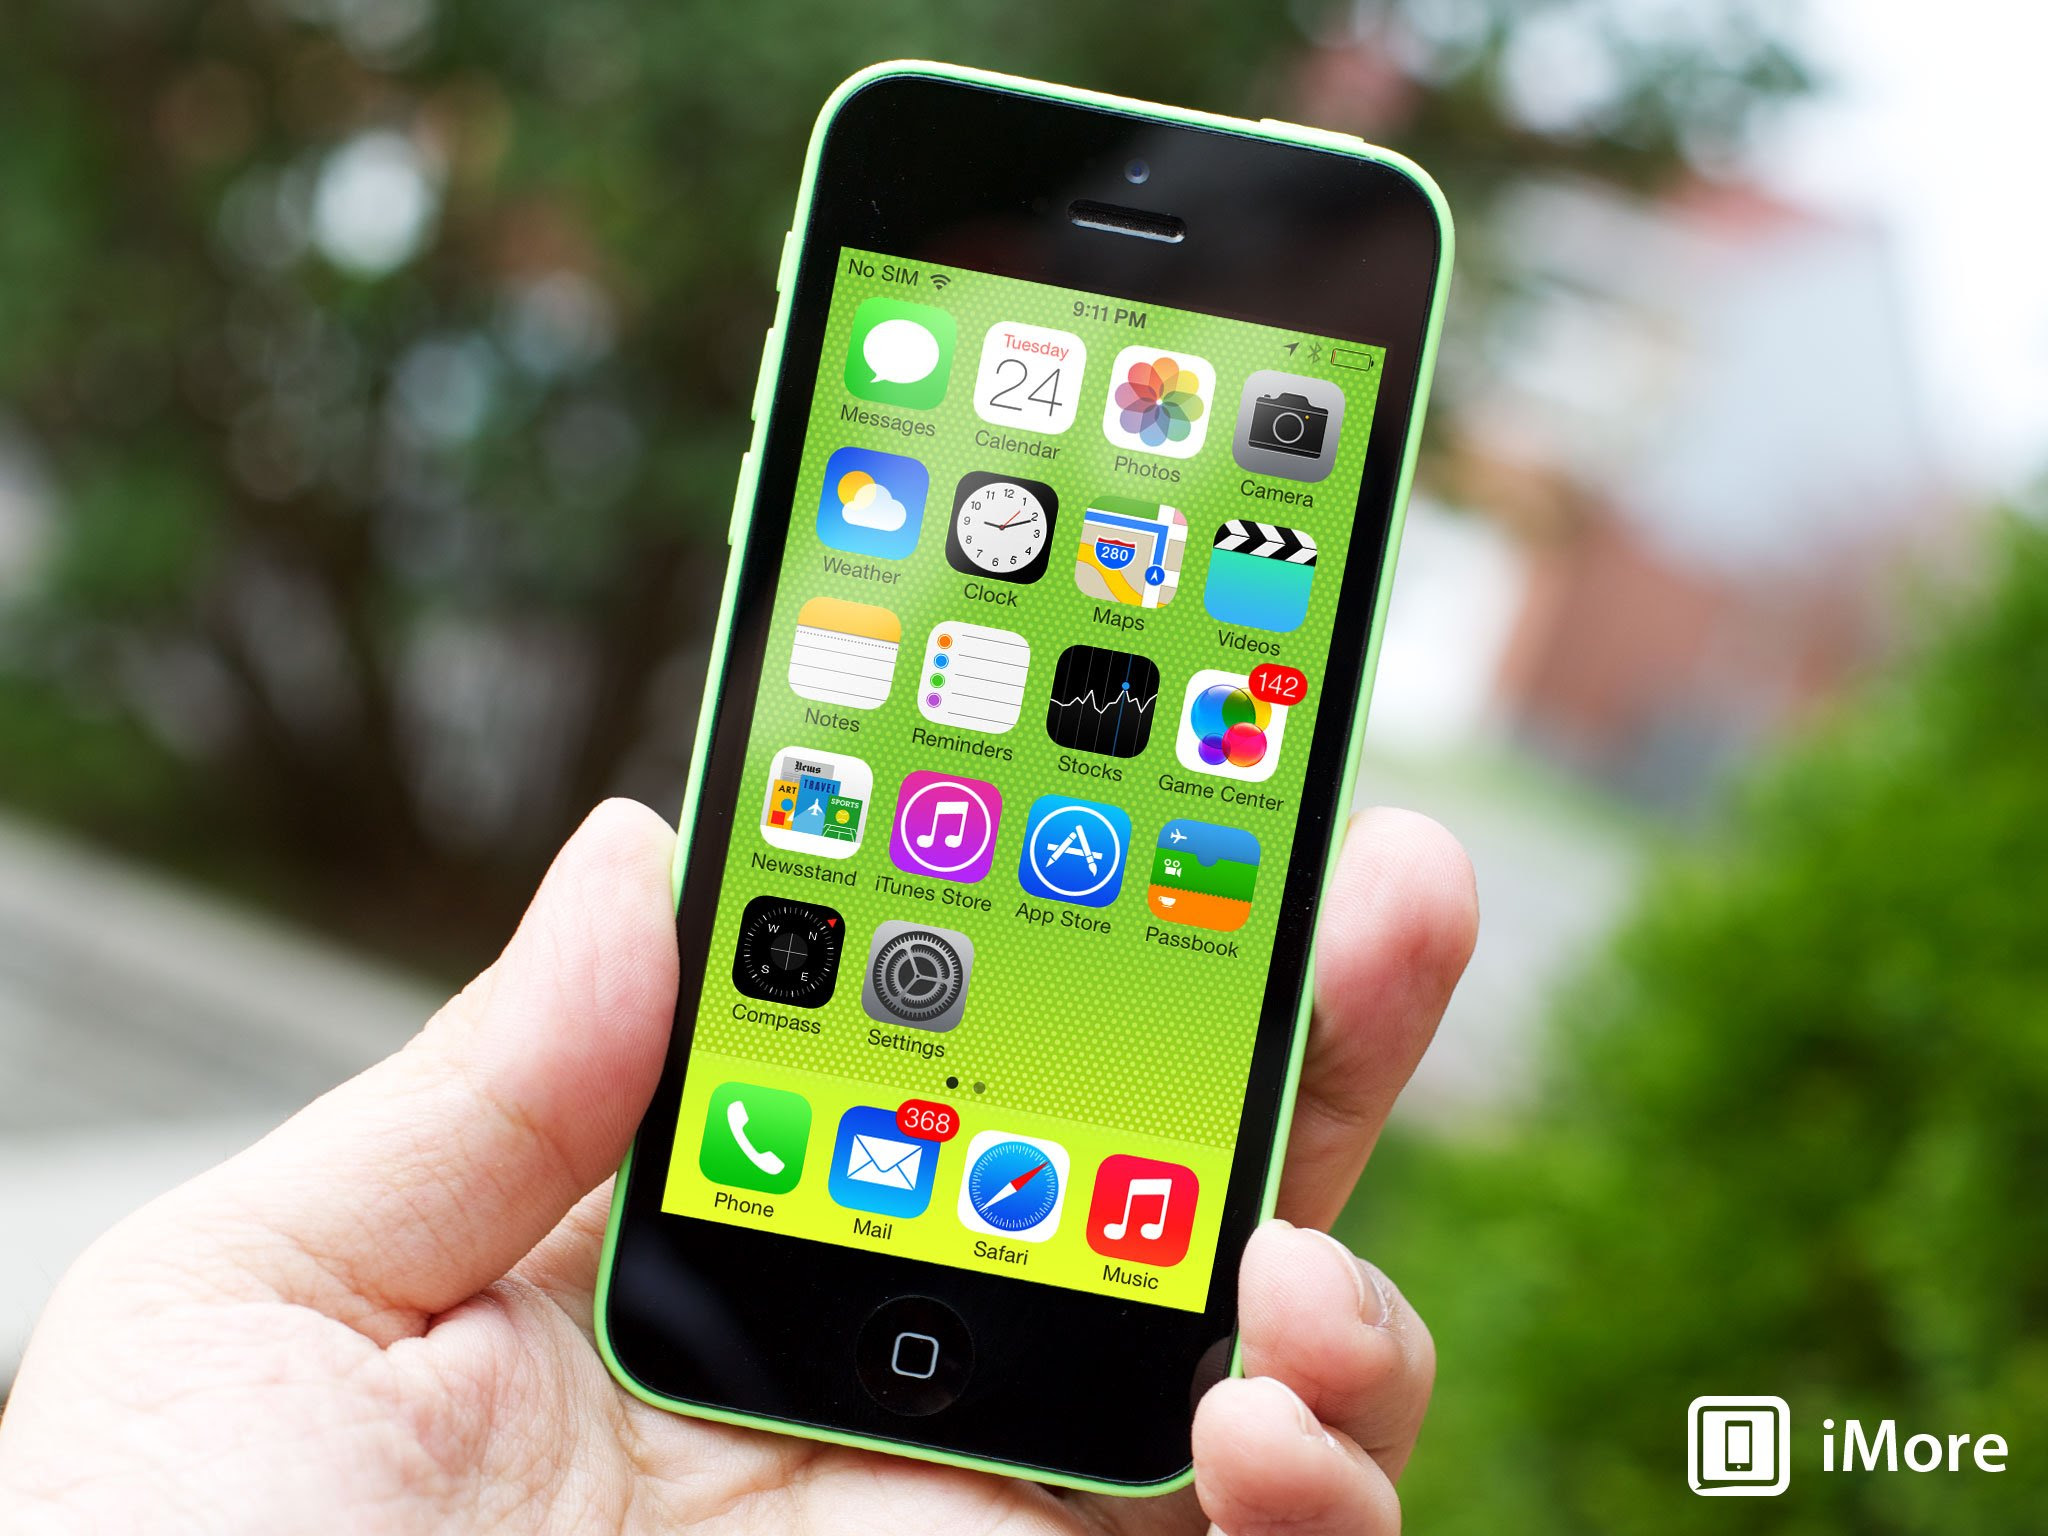 iOS 7.0.6 and 6.1.6 released with bug fixes